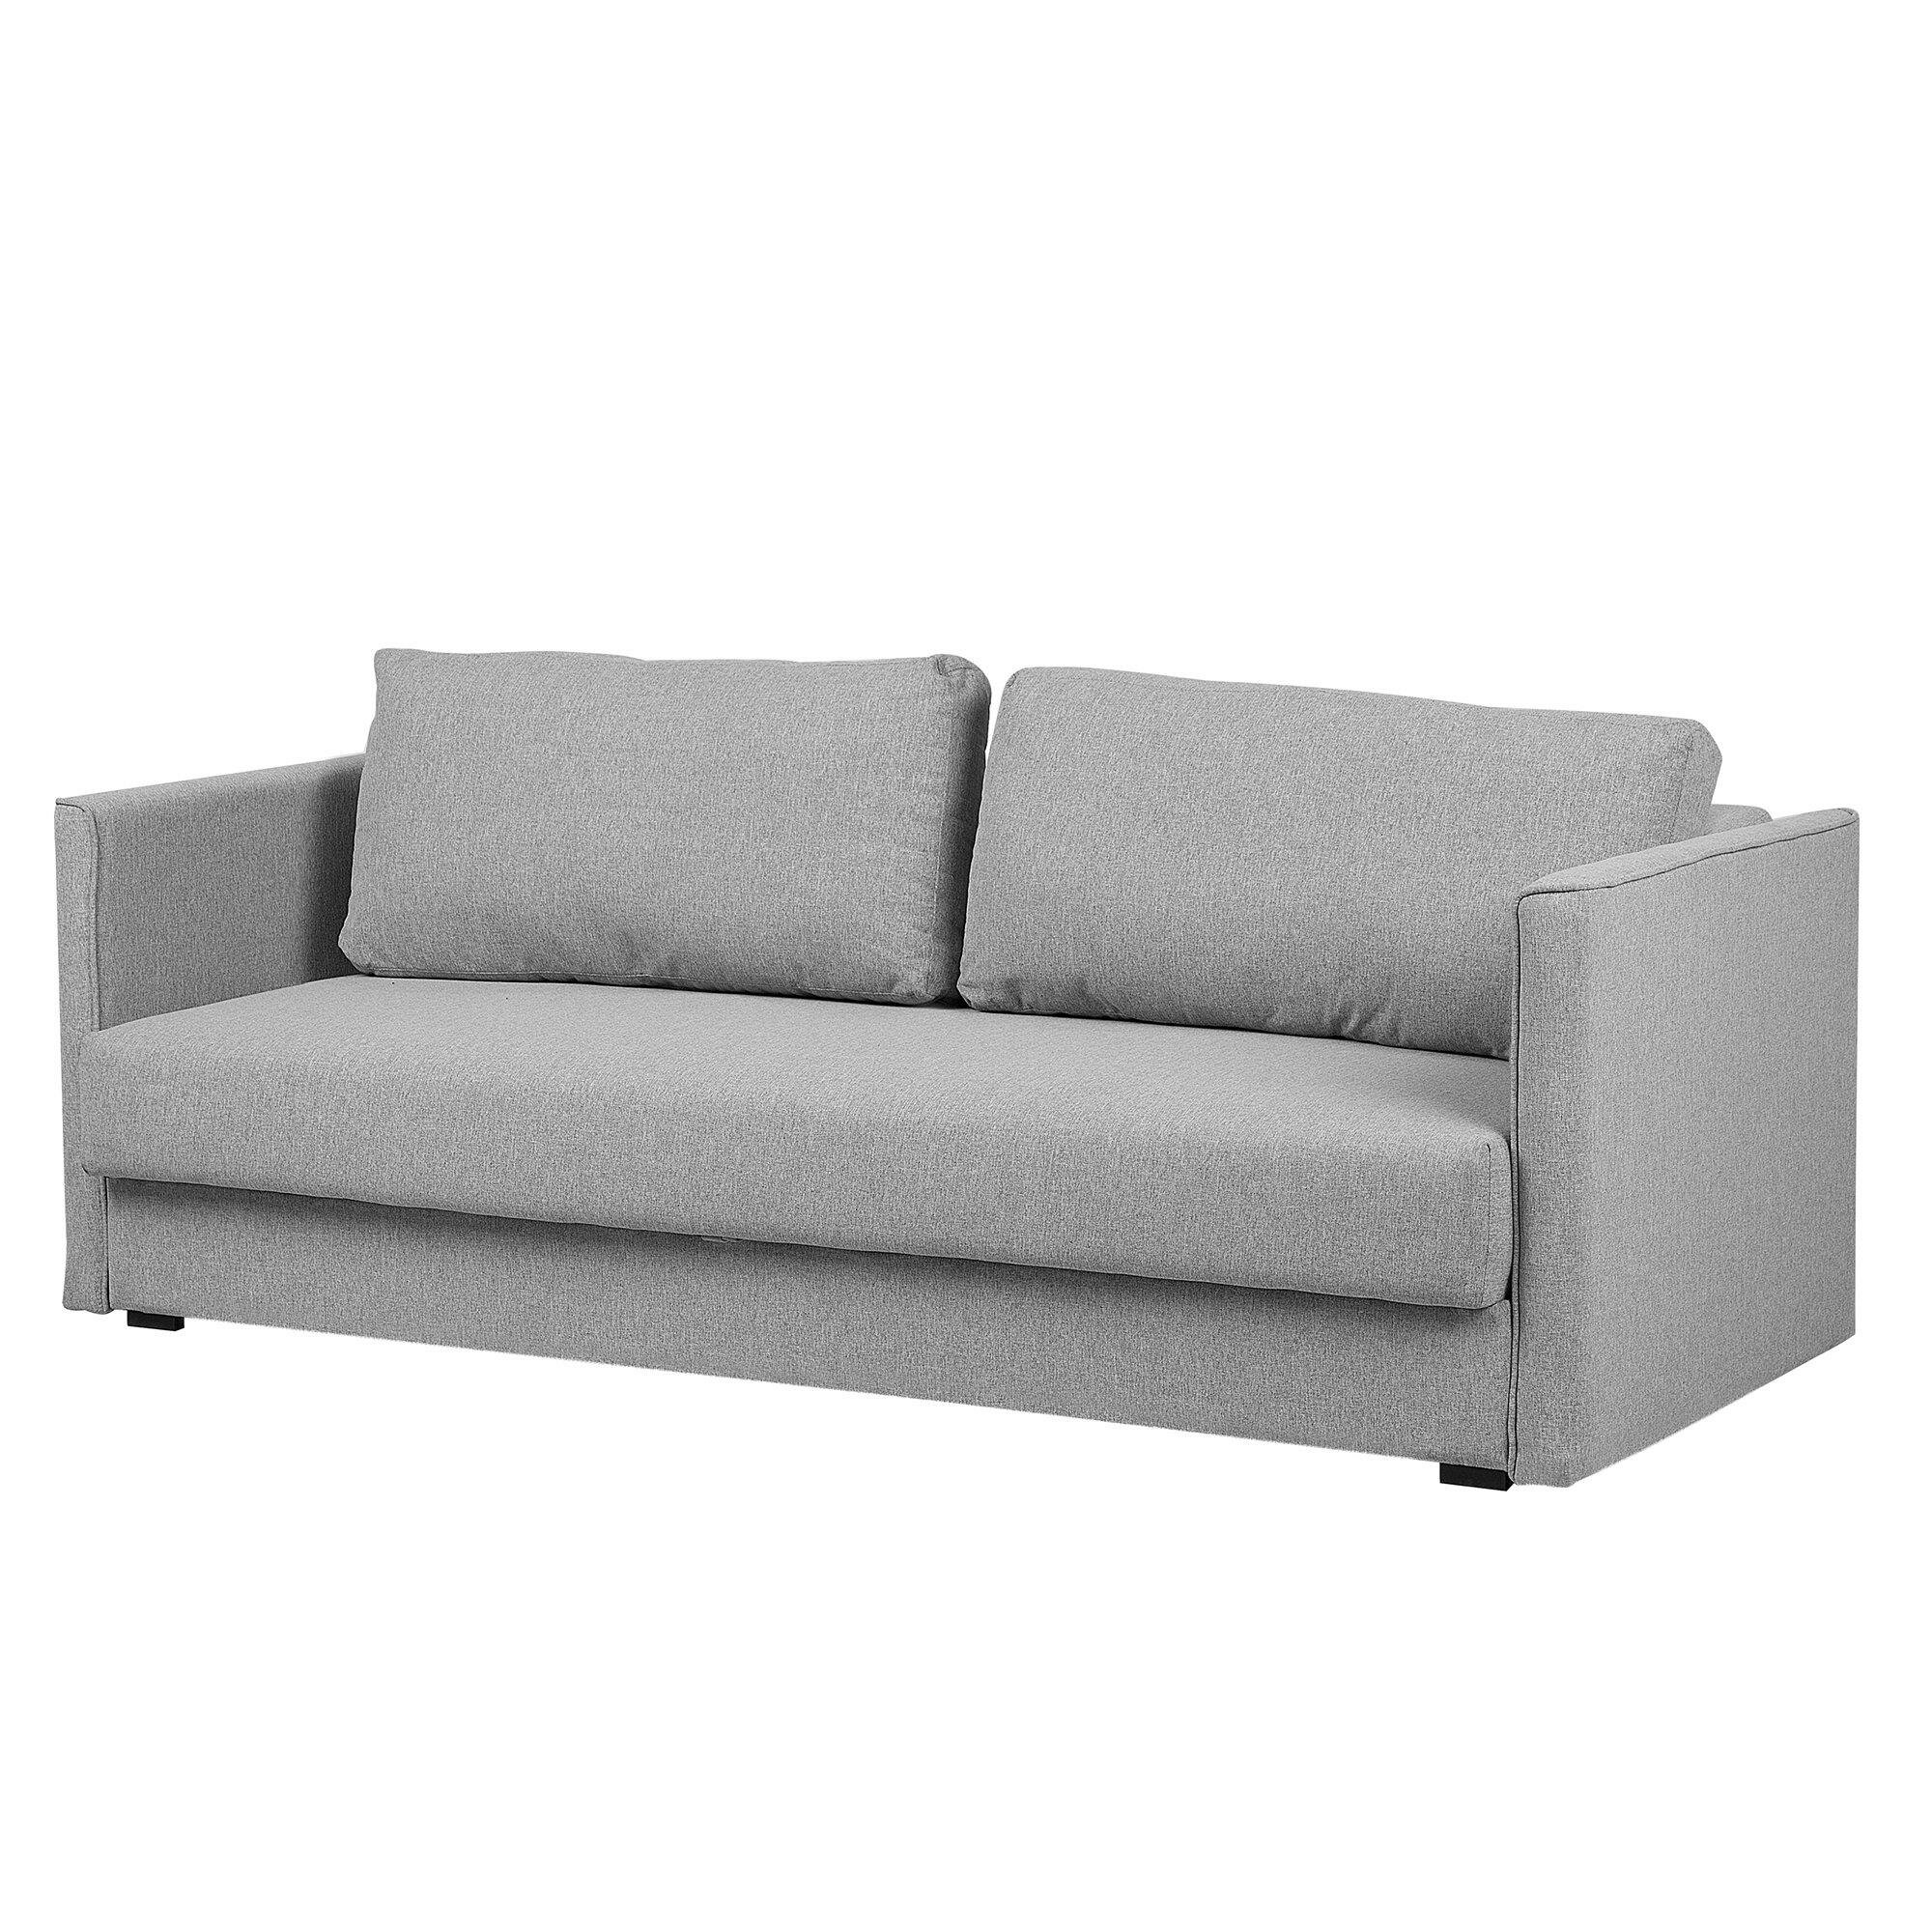 Tyesha 3 Seater Fold Out Sofa Bed